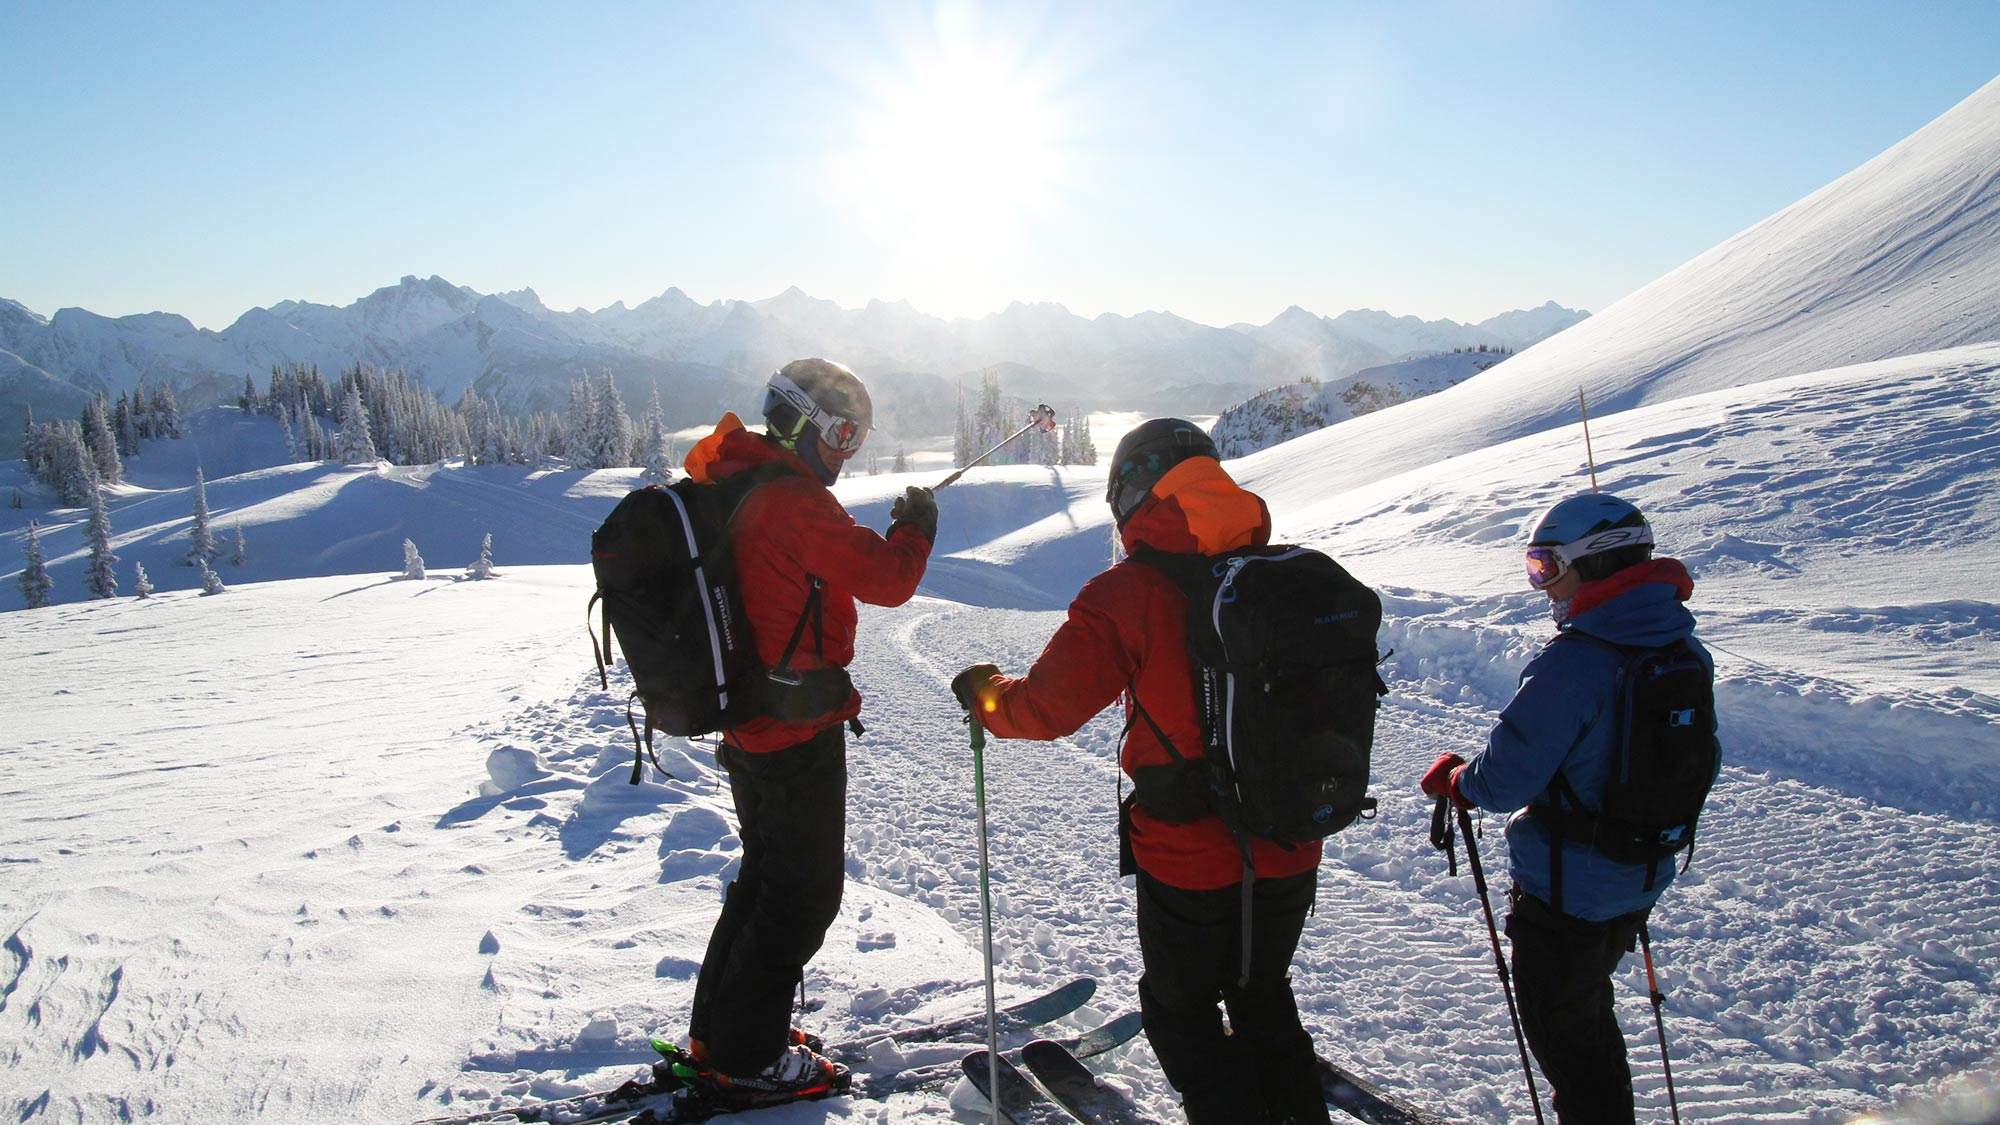 all-inclusive ski packages, ski & stay vacation trips 18/19 - snowpak